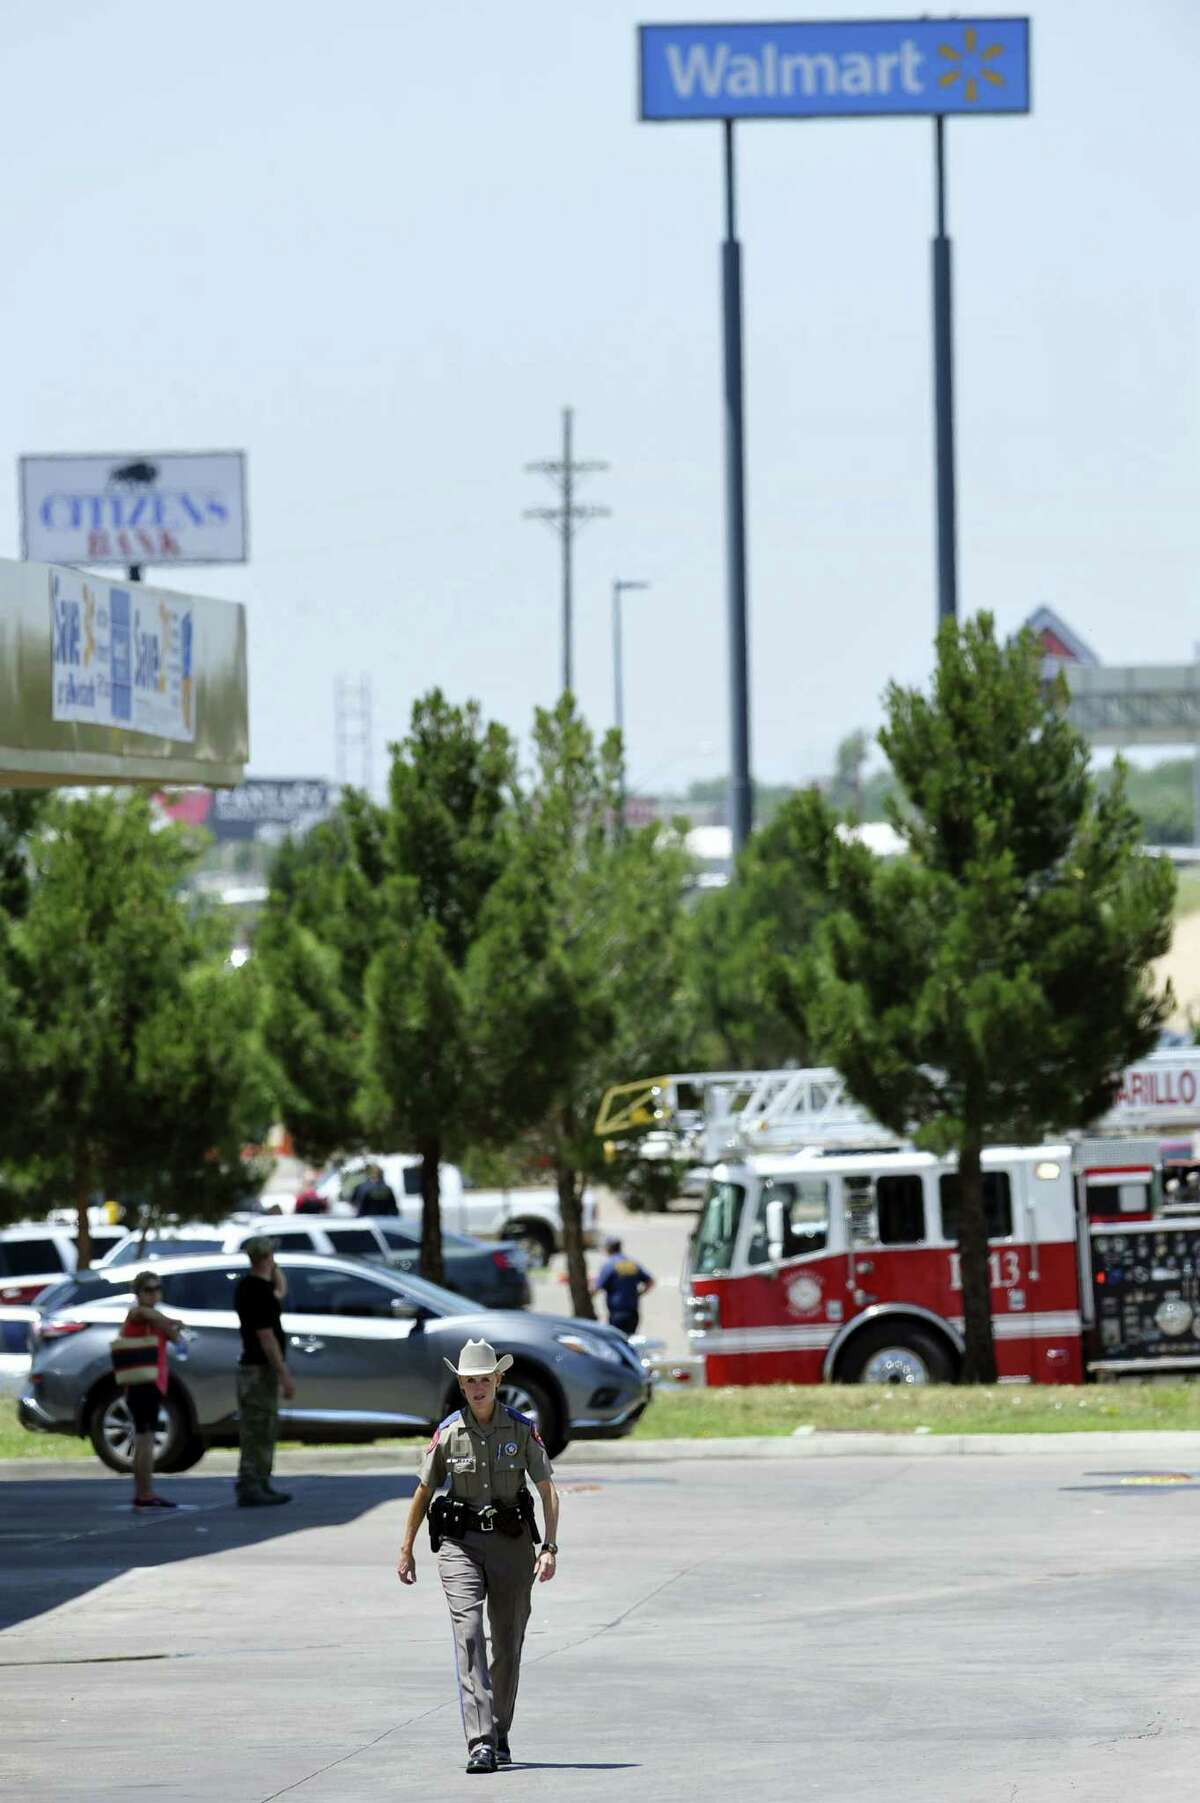 A police officer walks near a Wal-Mart store where officers responded to a reported shooting, Tuesday, June 14, 2016, in Amarillo, Texas.